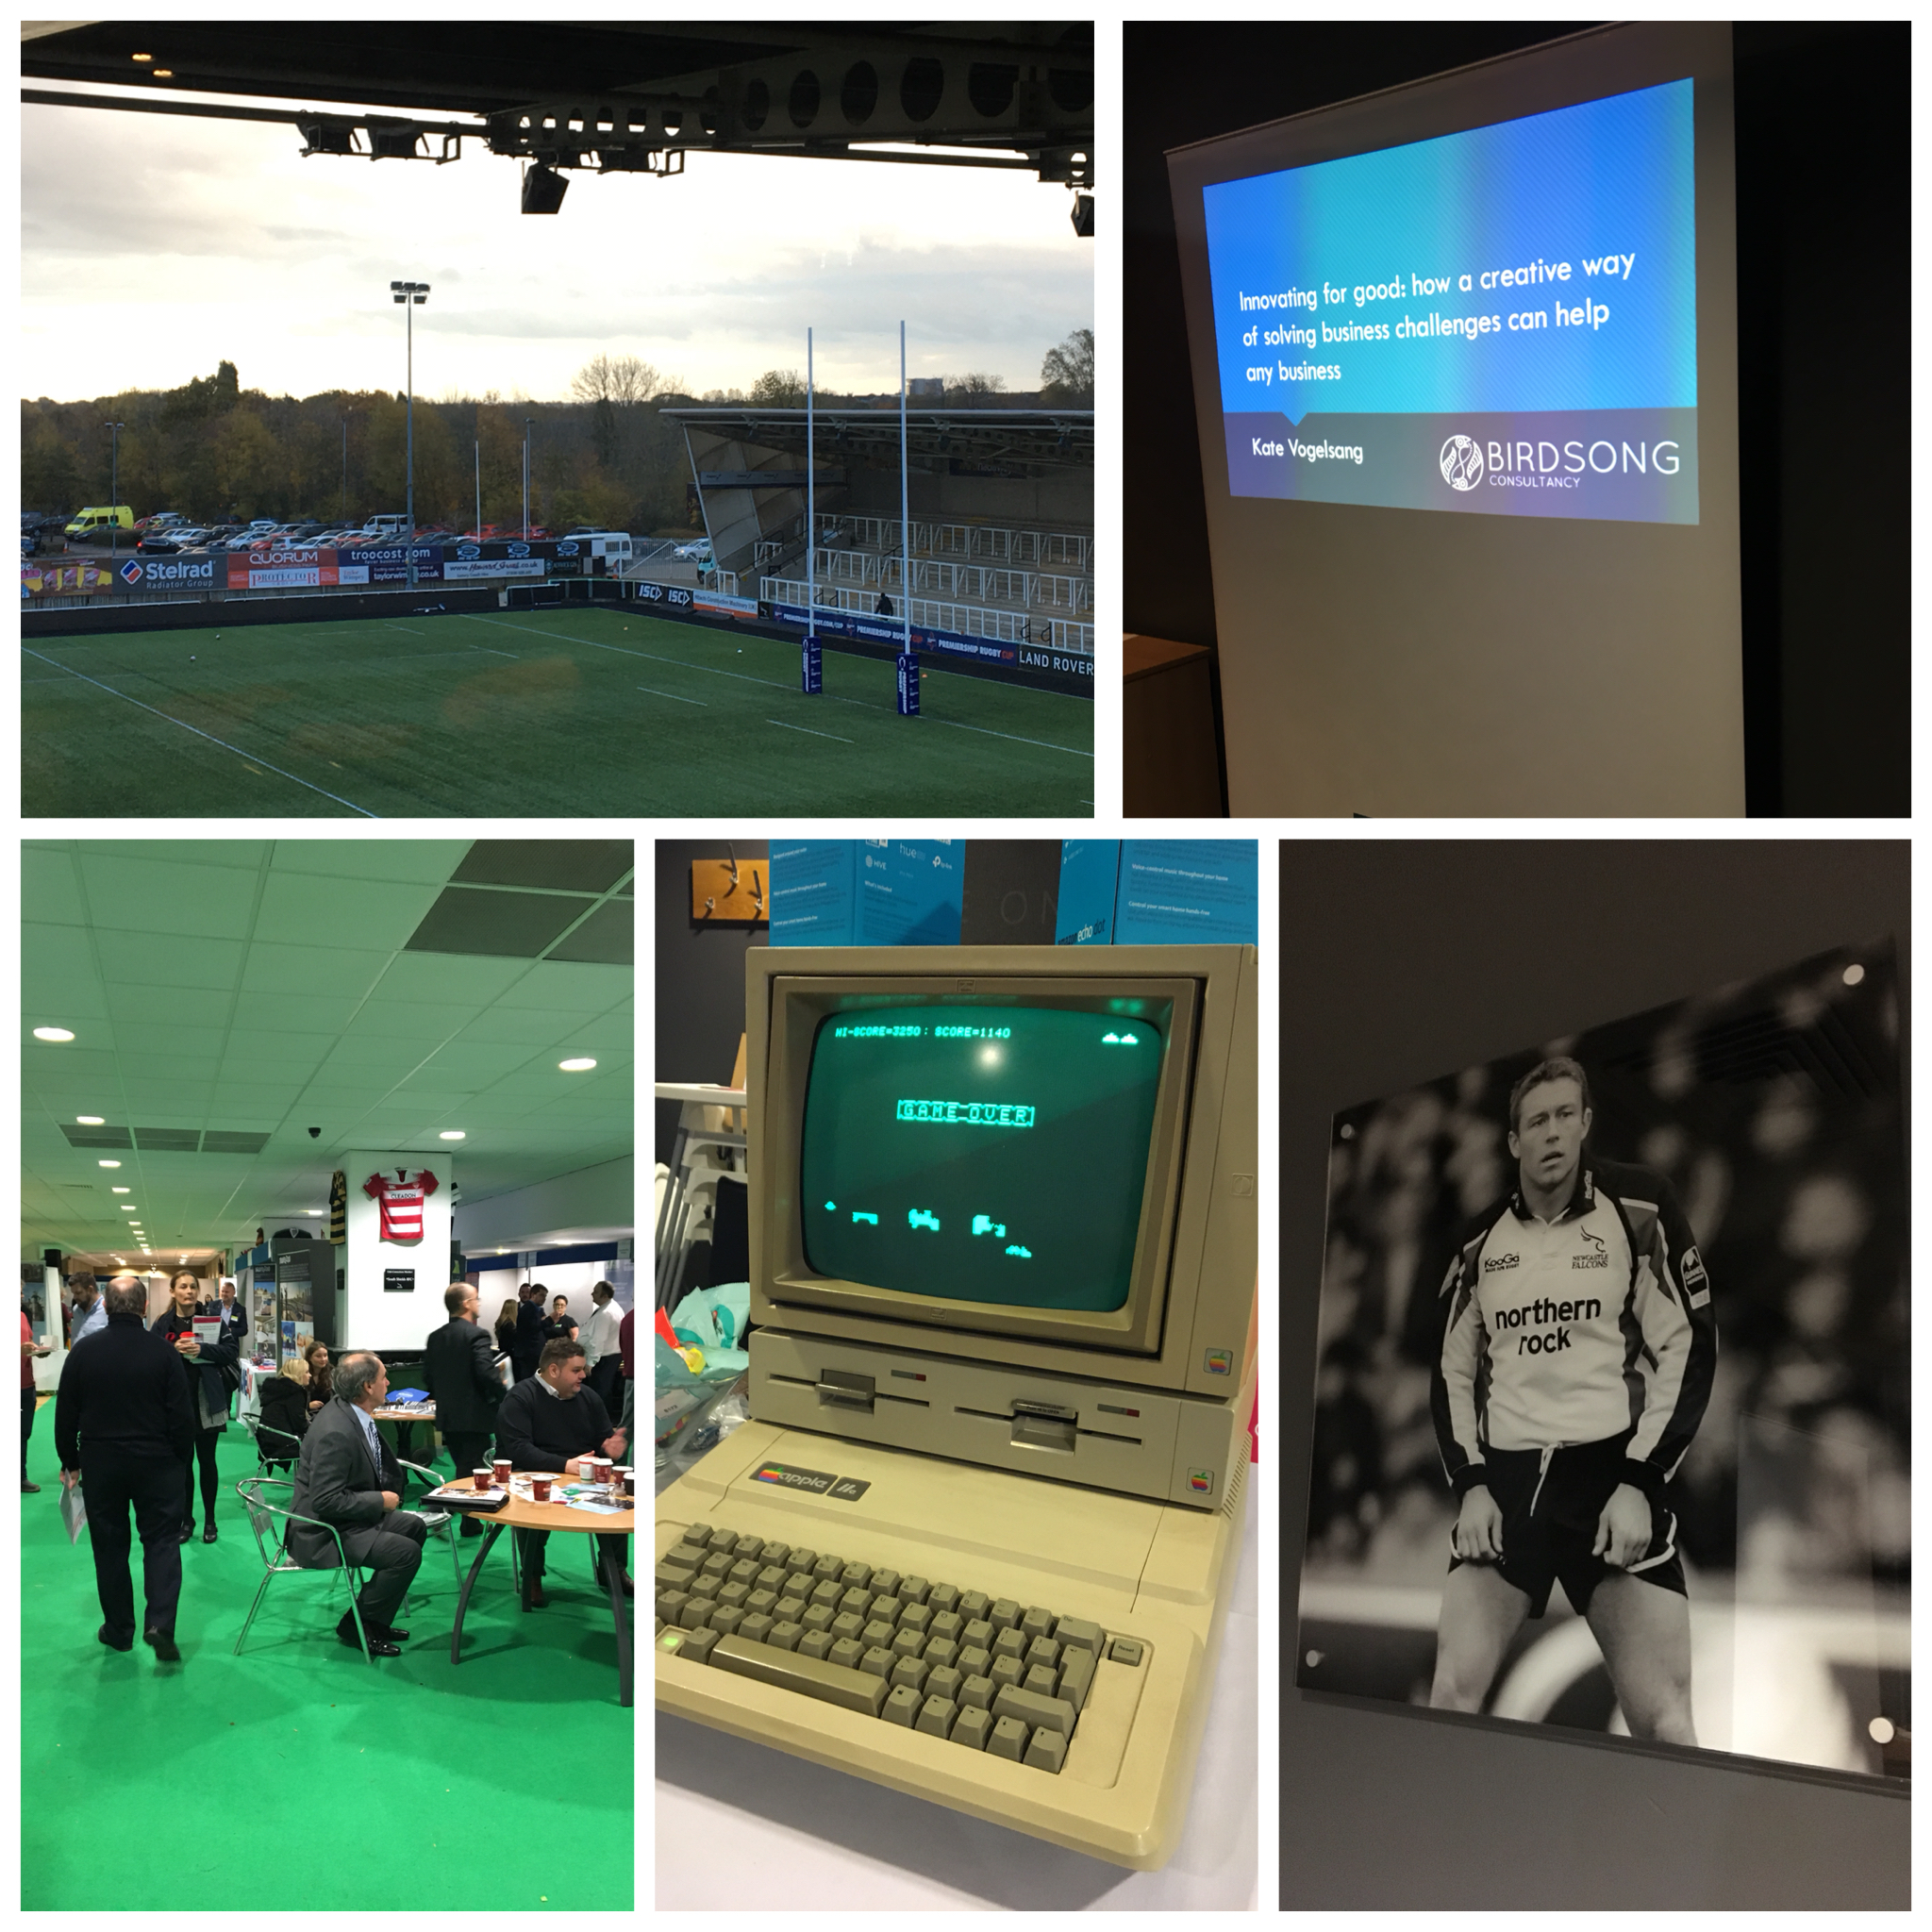 The NE Expo at Newcastle Falcons rugby ground on 7 November 2018